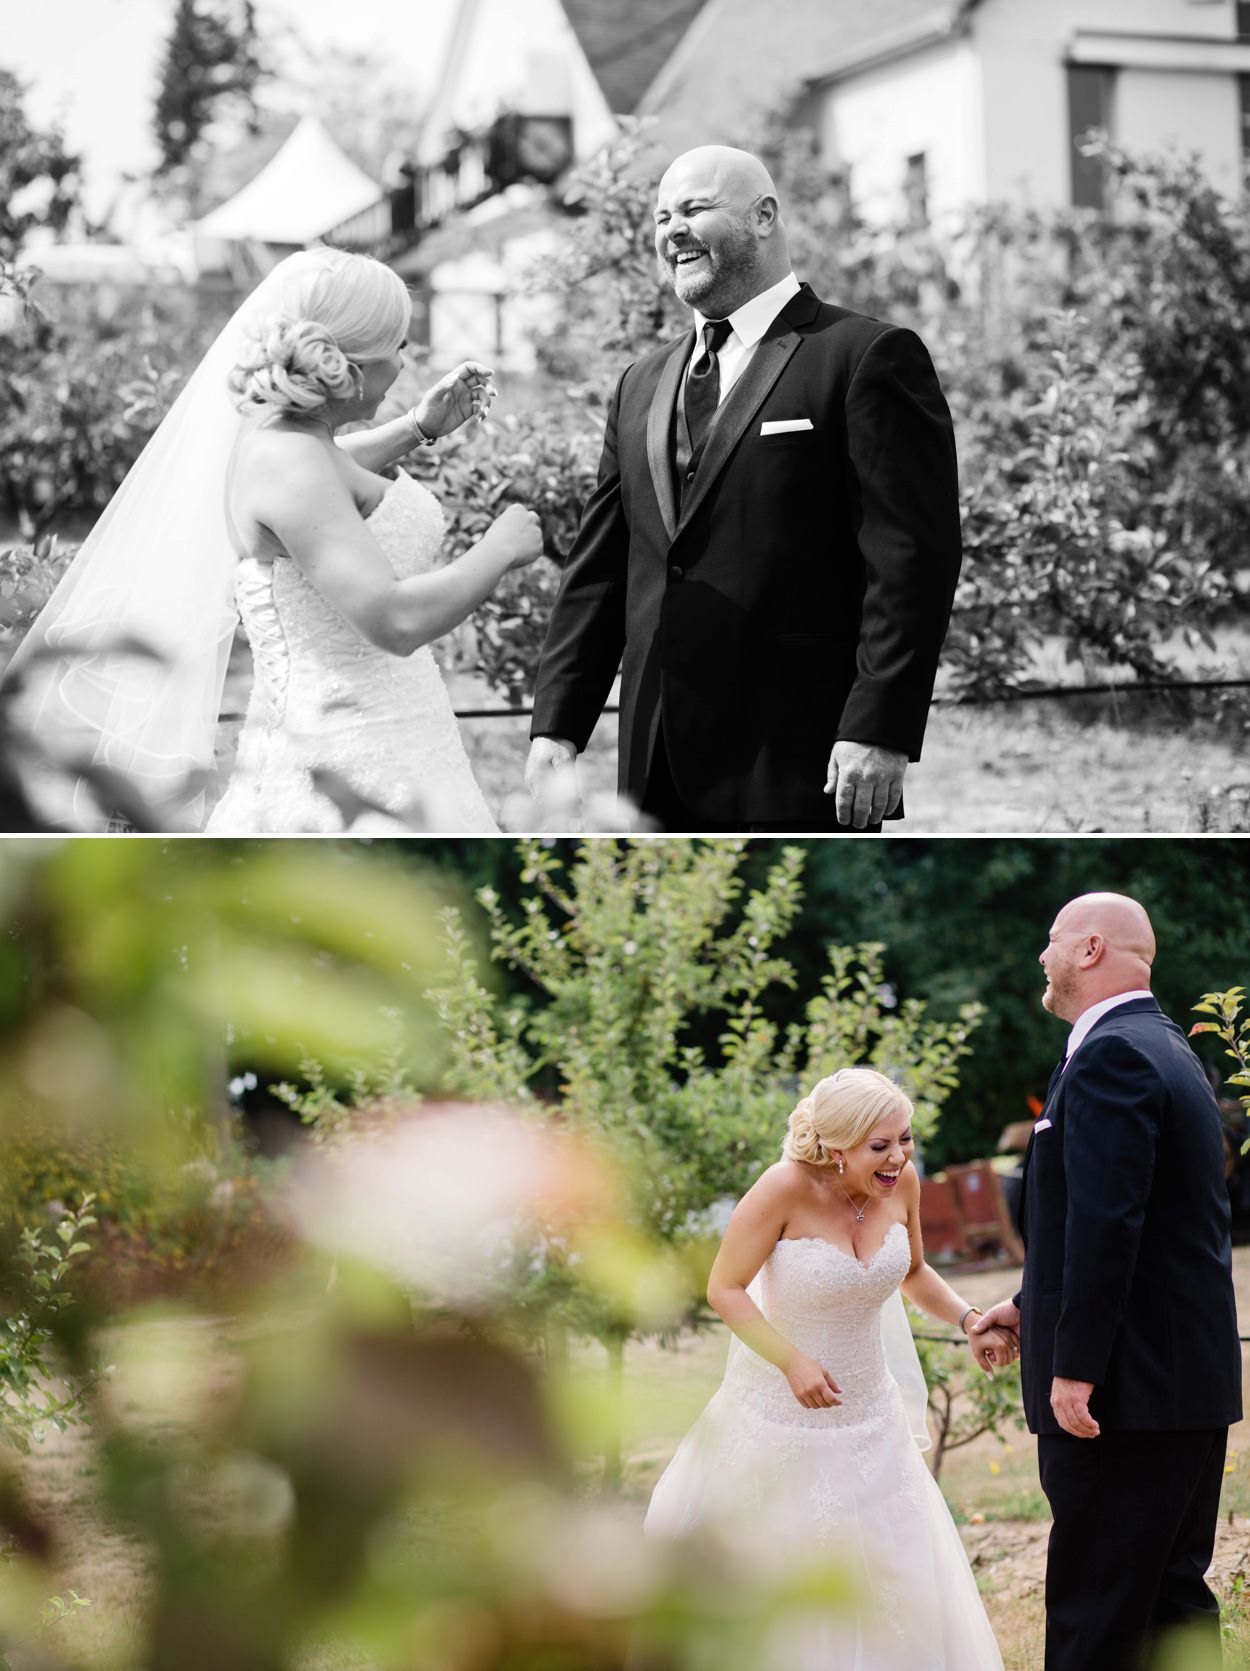 Diane & Jim's beautiful apple orchard wedding at Sea Cidery in Victoria BC. Photographed by FunkyTown Photography